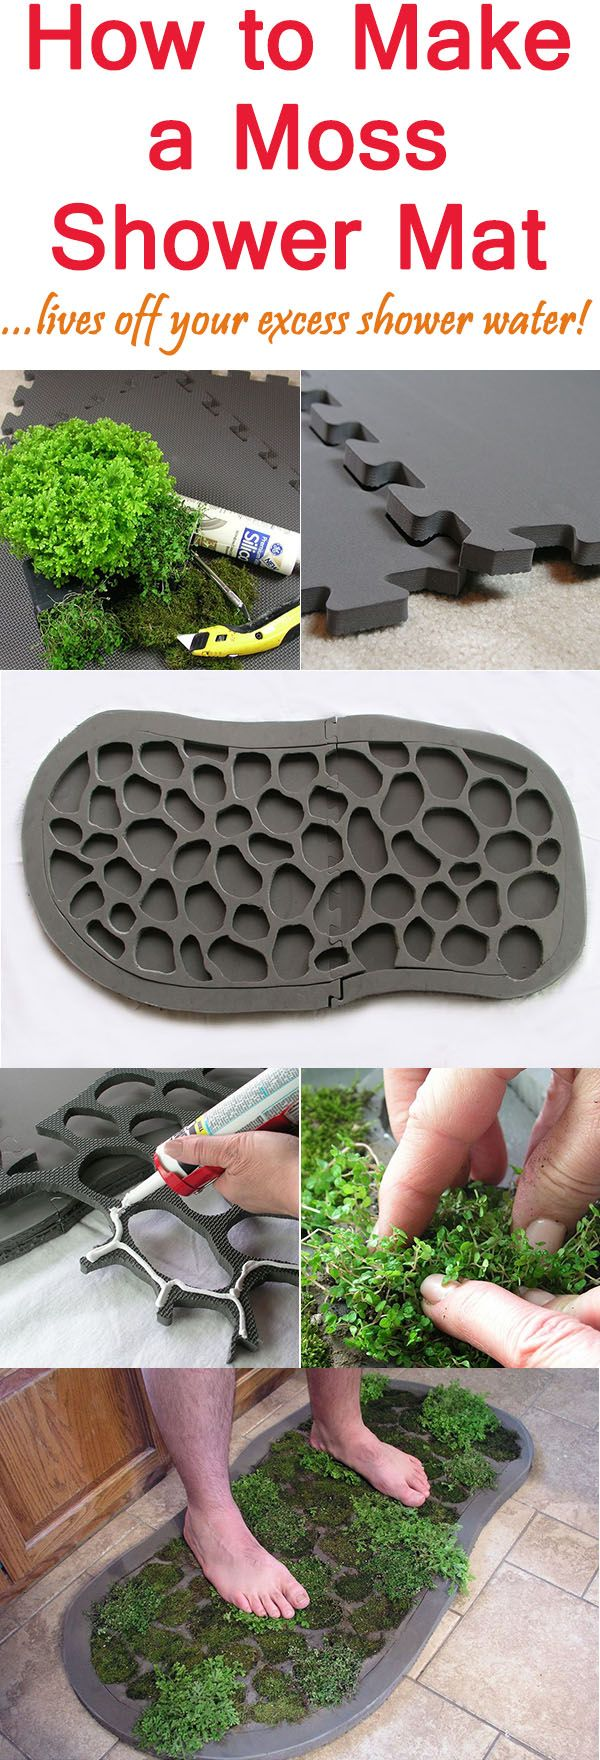 A Shower Mat That Feels Good On Your Feet And Lives Off The Excess Water From Talk About Recycling Green Ecofriendly